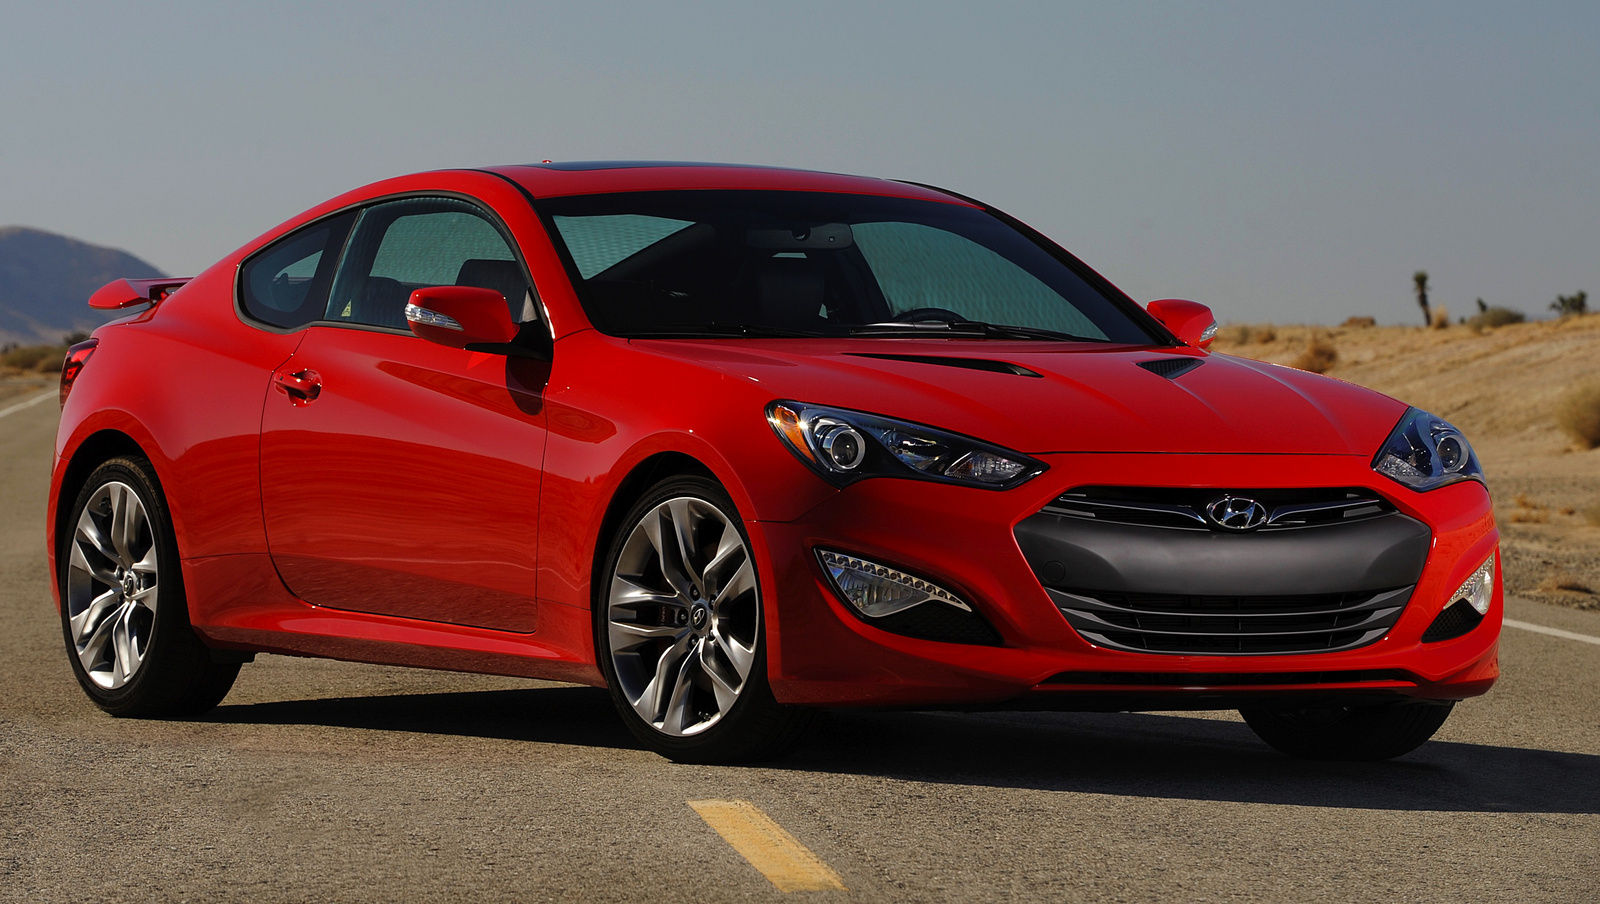 2014 hyundai genesis coupe information and photos zombiedrive. Black Bedroom Furniture Sets. Home Design Ideas